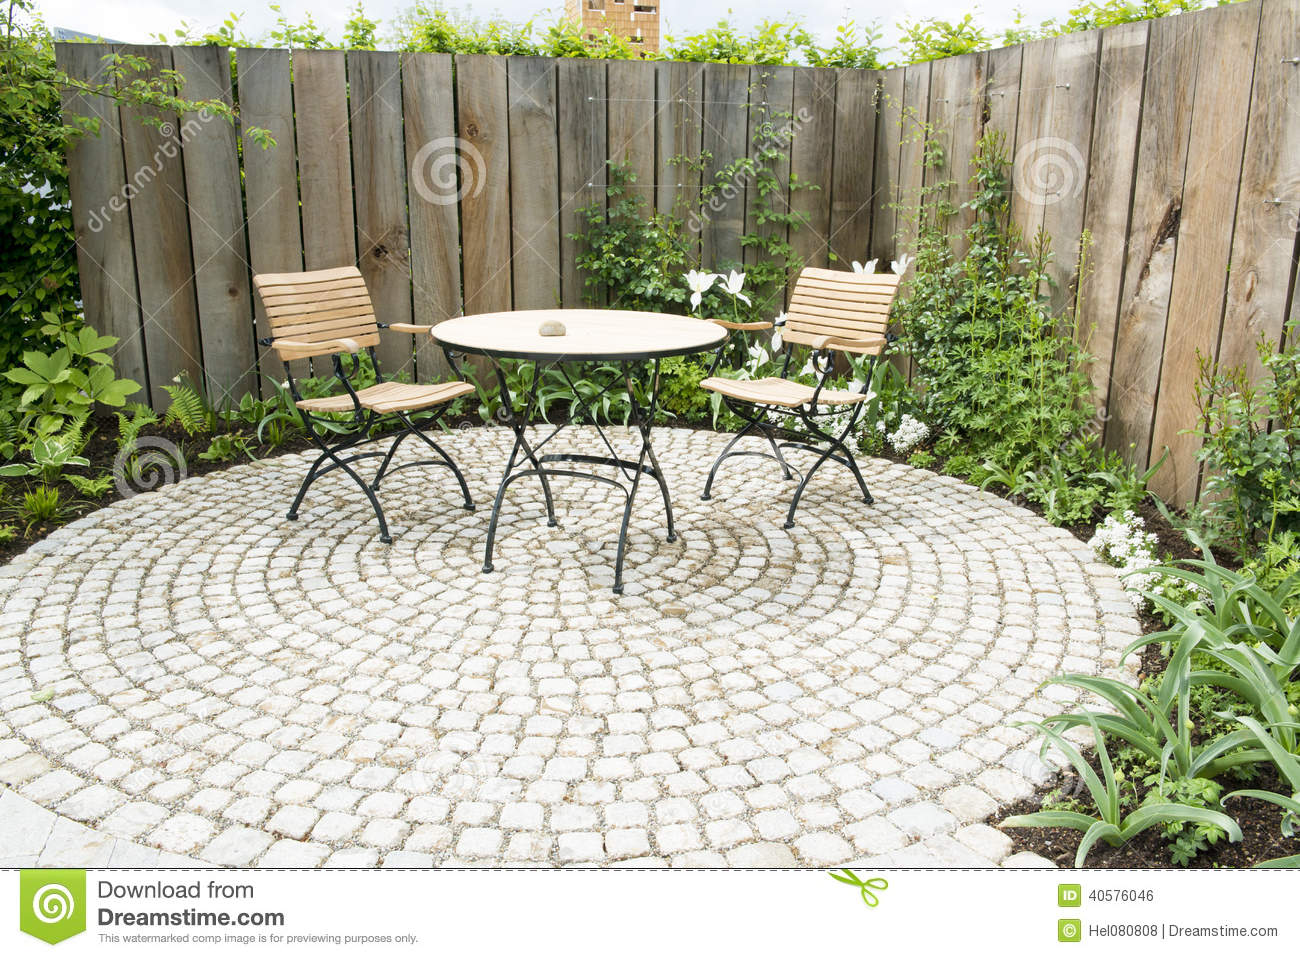 Garden patio with two chairs and round table in front of flowerbed and wooden planks